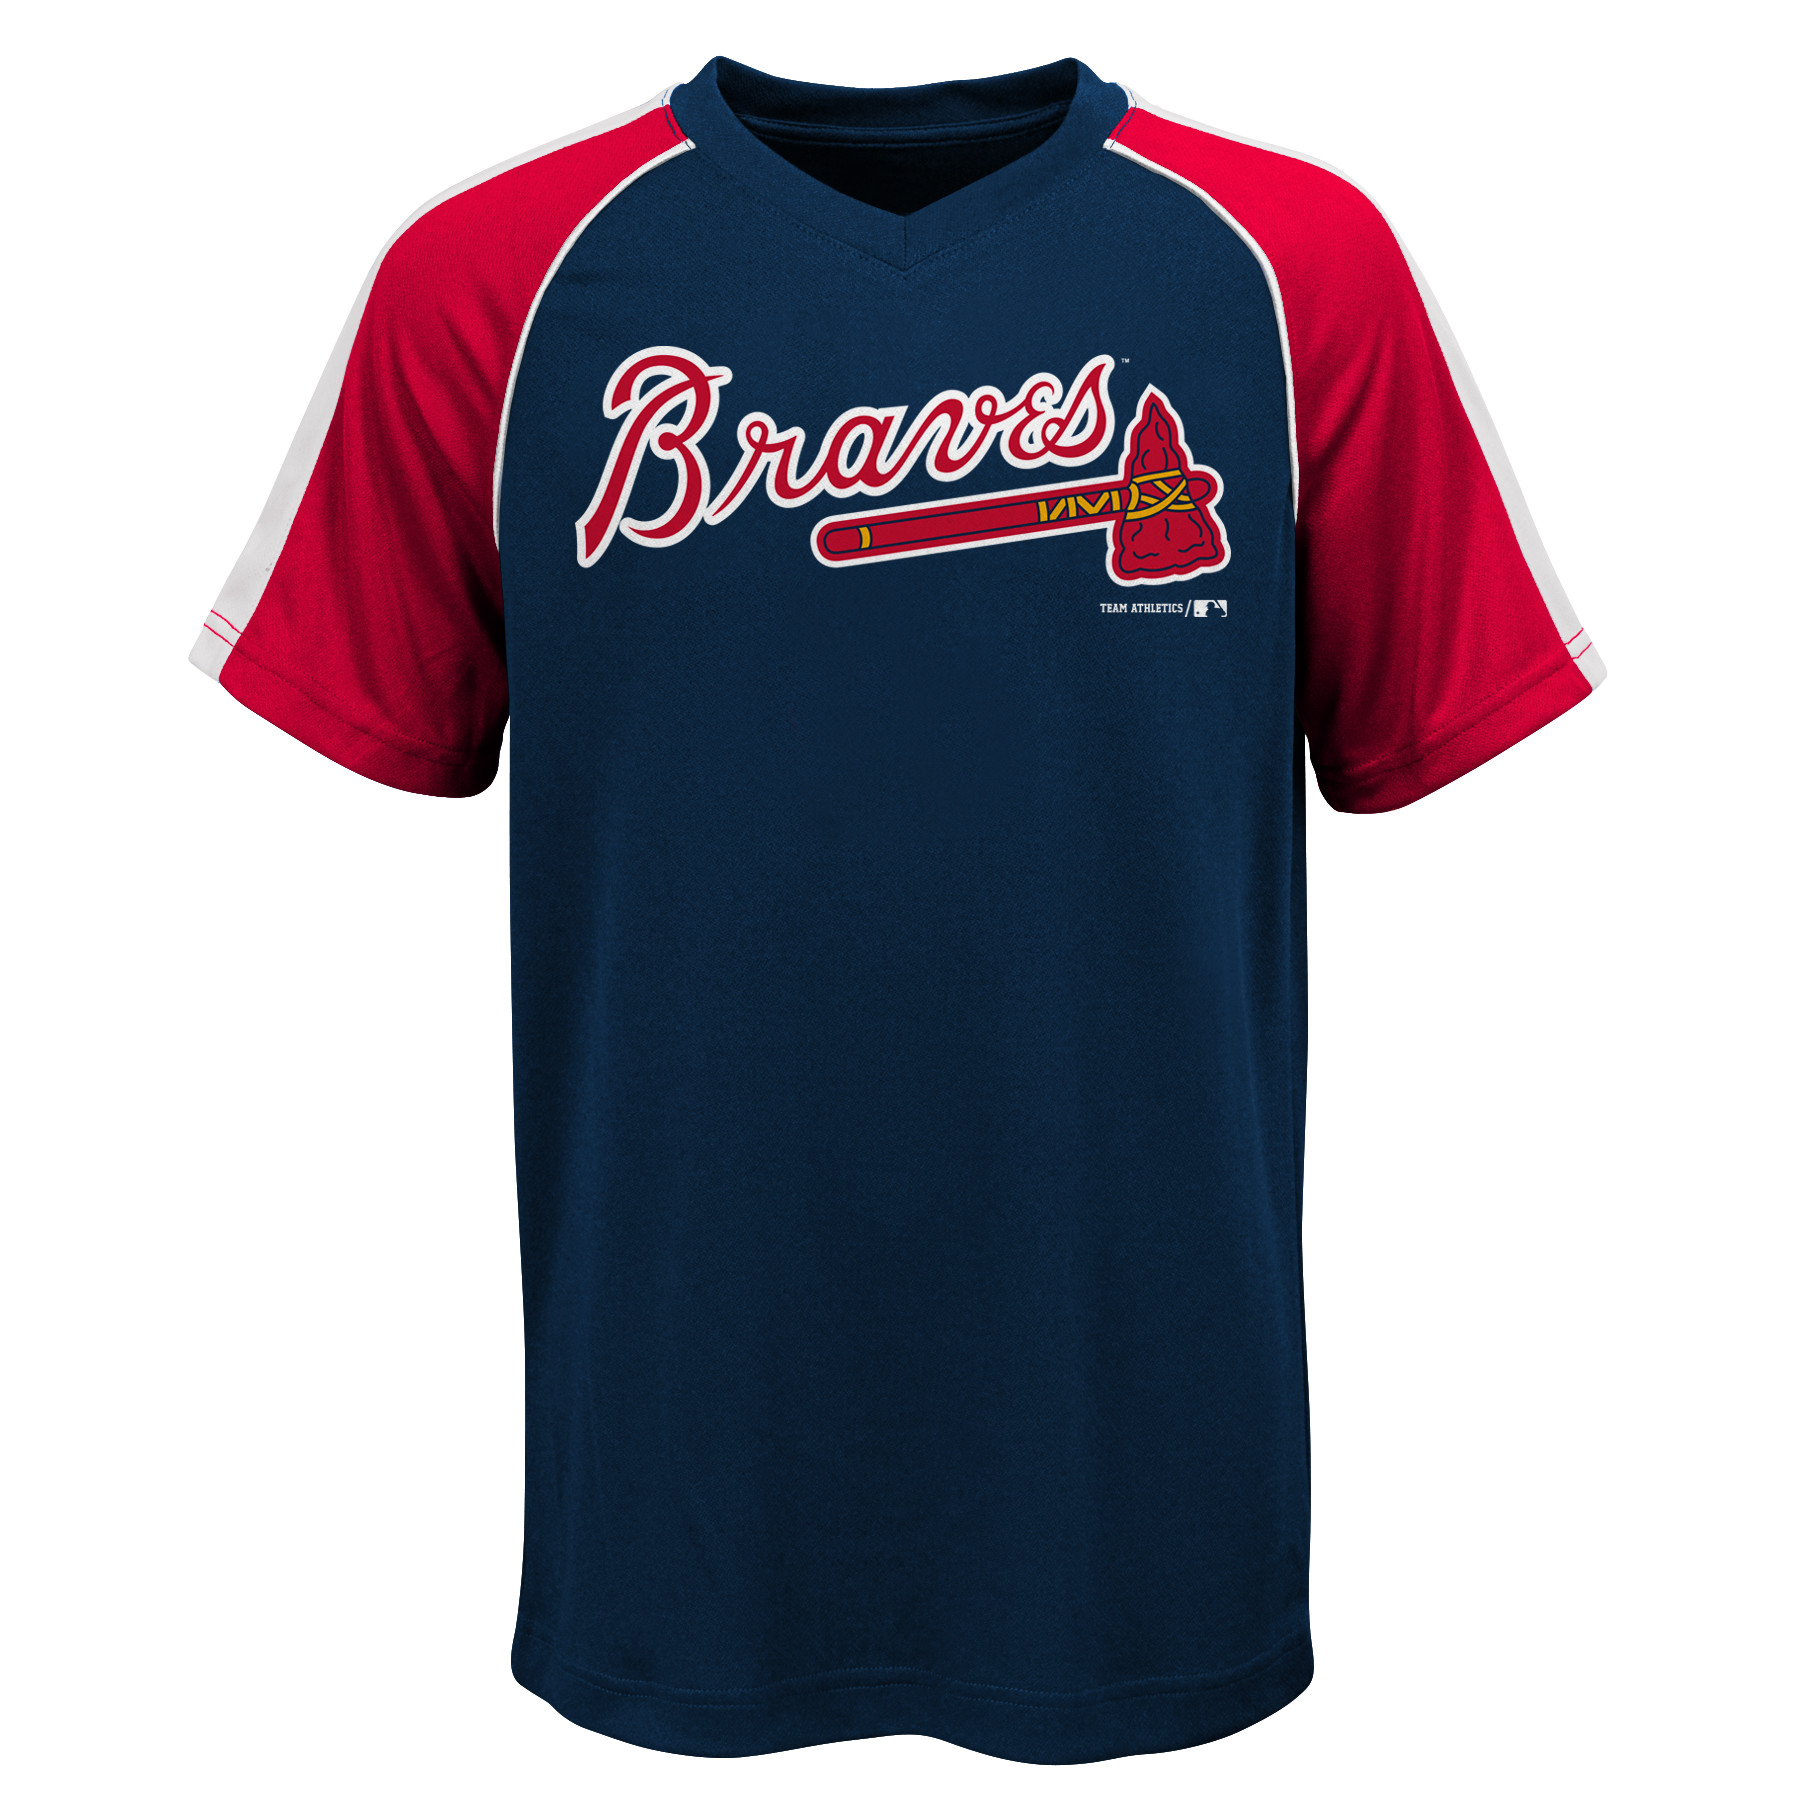 MLB Atlanta Braves TEE Short Sleeve Boys Fashion Jersey Tee 100% Polyester Pin Dot Mesh Jersey Team Tee 4-18